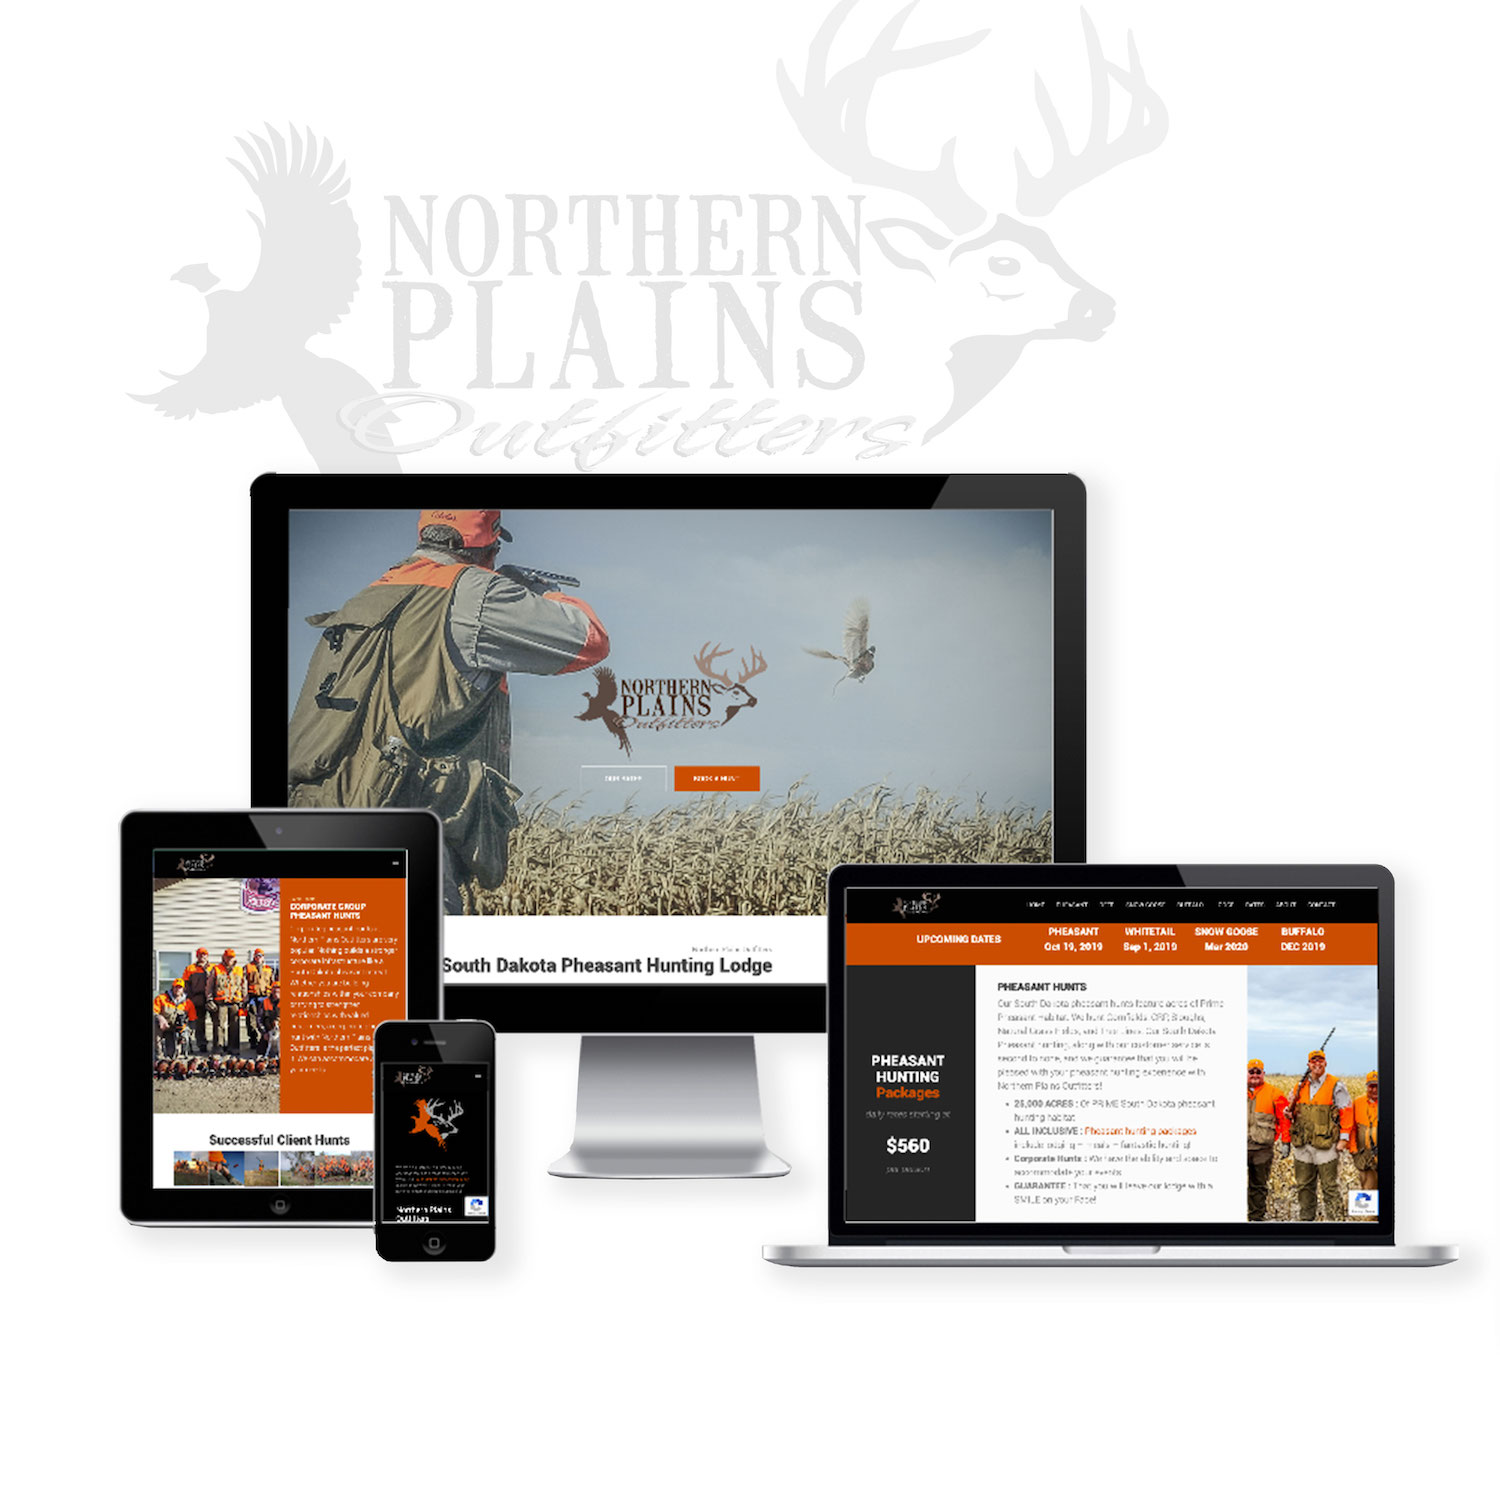 Pheasant Hunting Outfitter Website Design